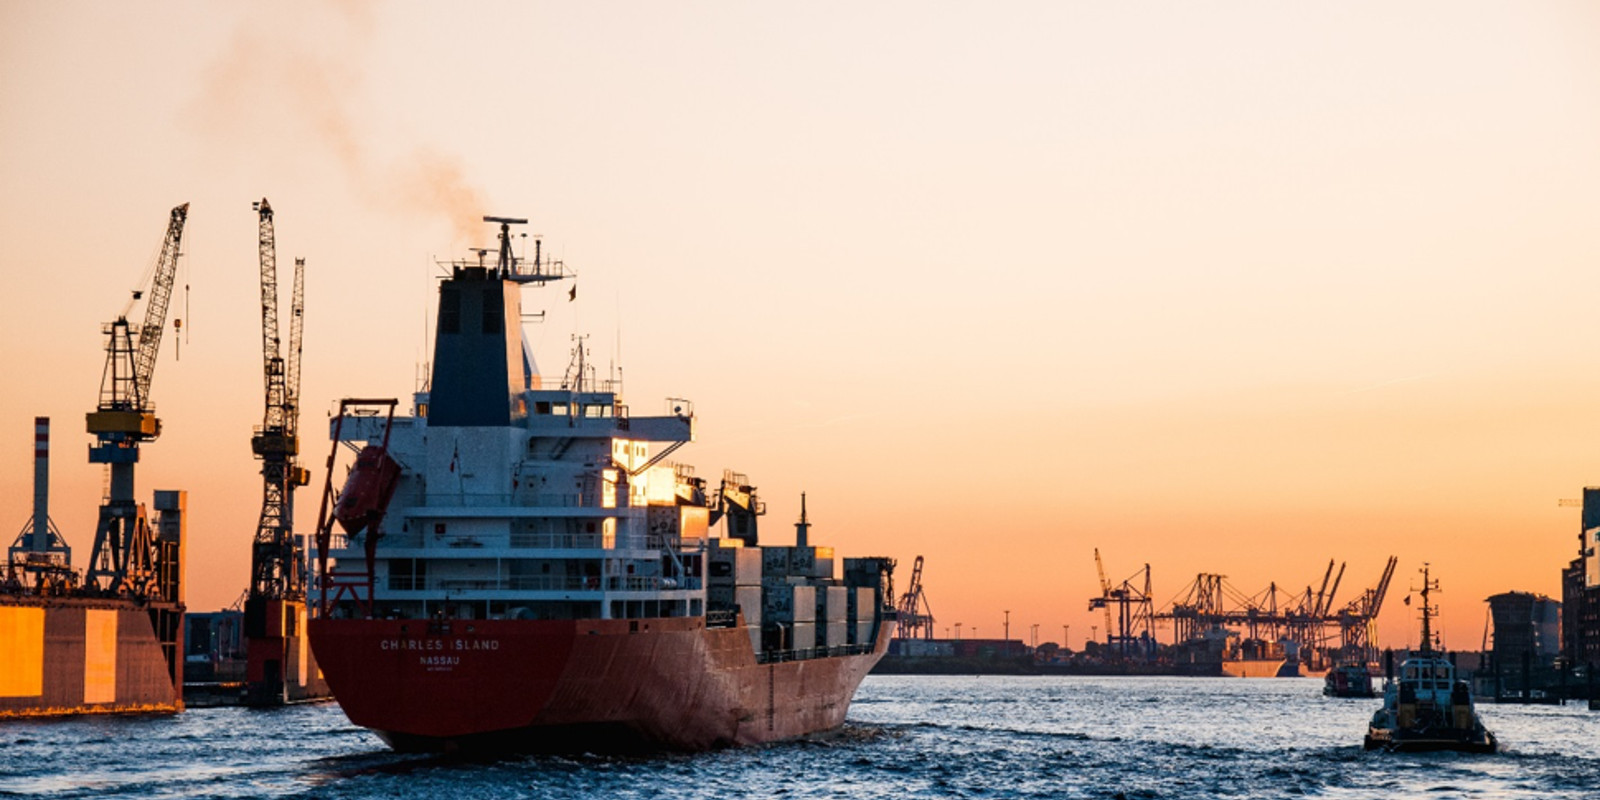 Analysing UK port and shipping operations using big data